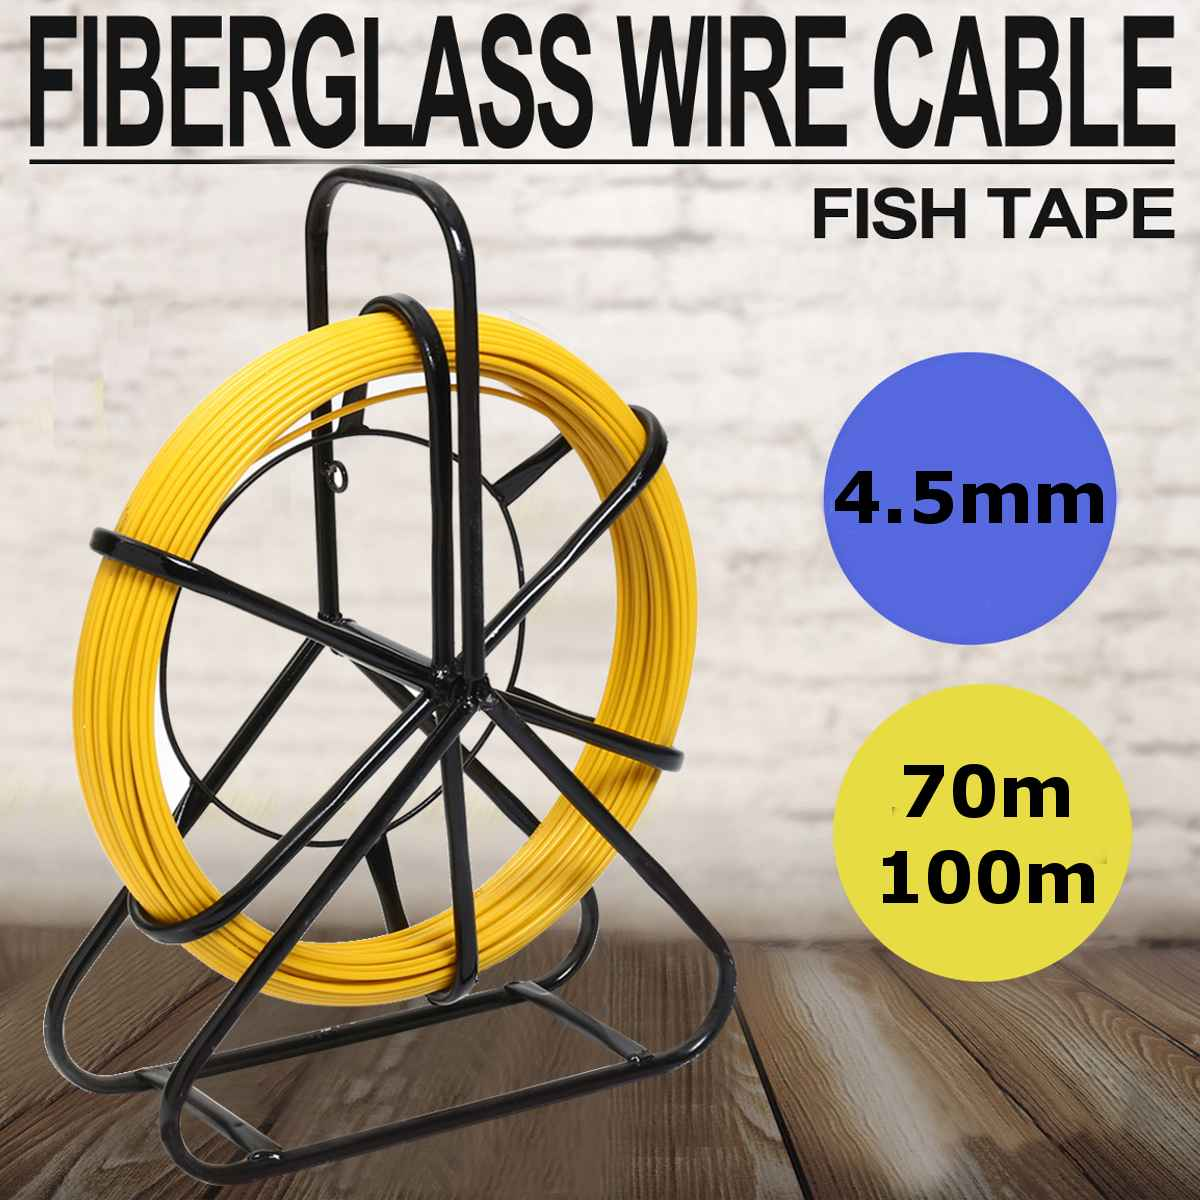 4.5mm 100m Fish Tape Fiberglass Wire Cable Running Rod Duct Rodder Fishtape Puller For Floor Conduit Telecom Wall